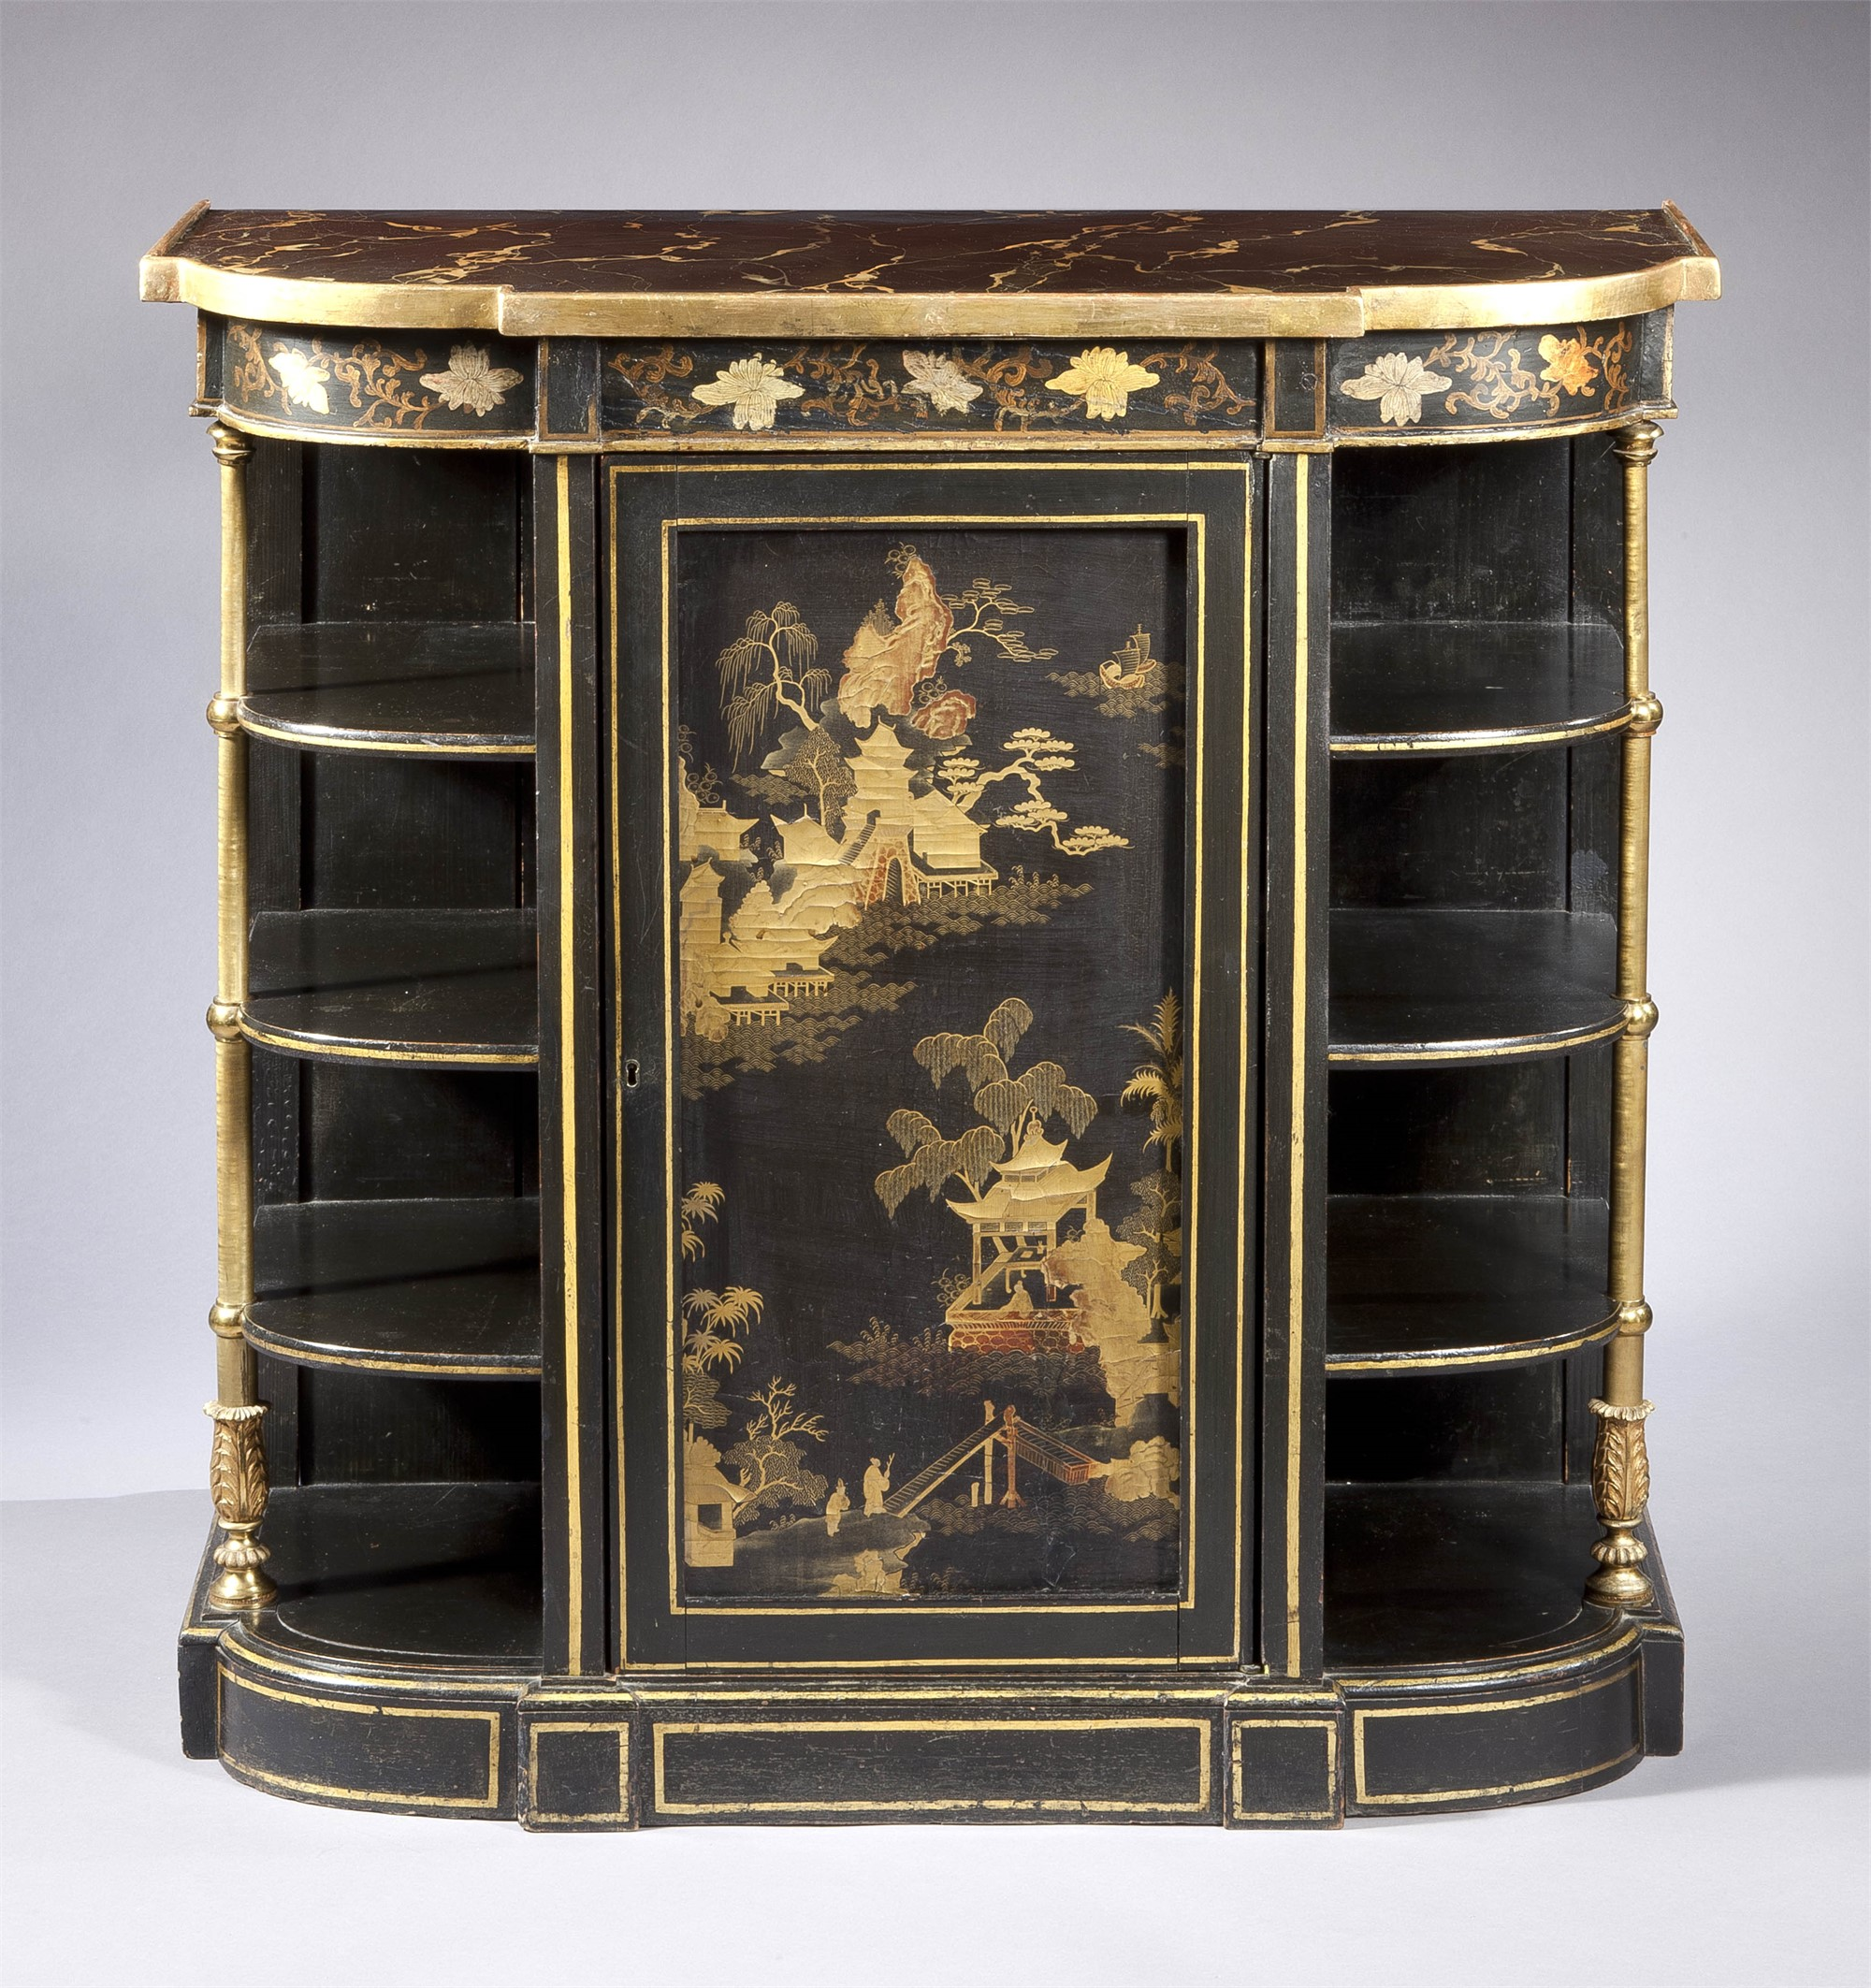 REGENCY LACQUER PANEL INSET AND PAINT DECORATED SIDE CABINET